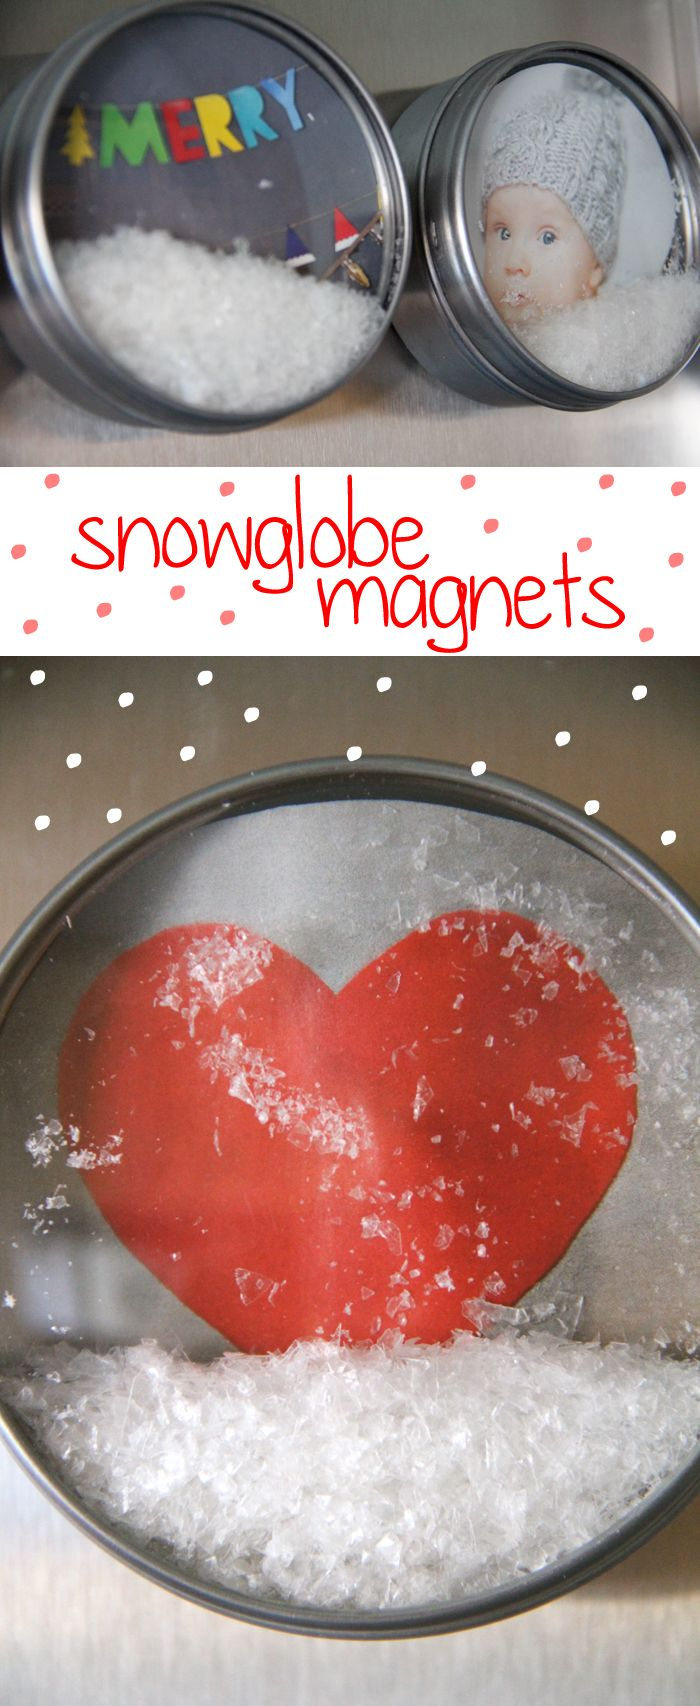 snowglobe magnets made of magnetic spice tins from ikea and pictures cut out of catalogs. Black Bedroom Furniture Sets. Home Design Ideas